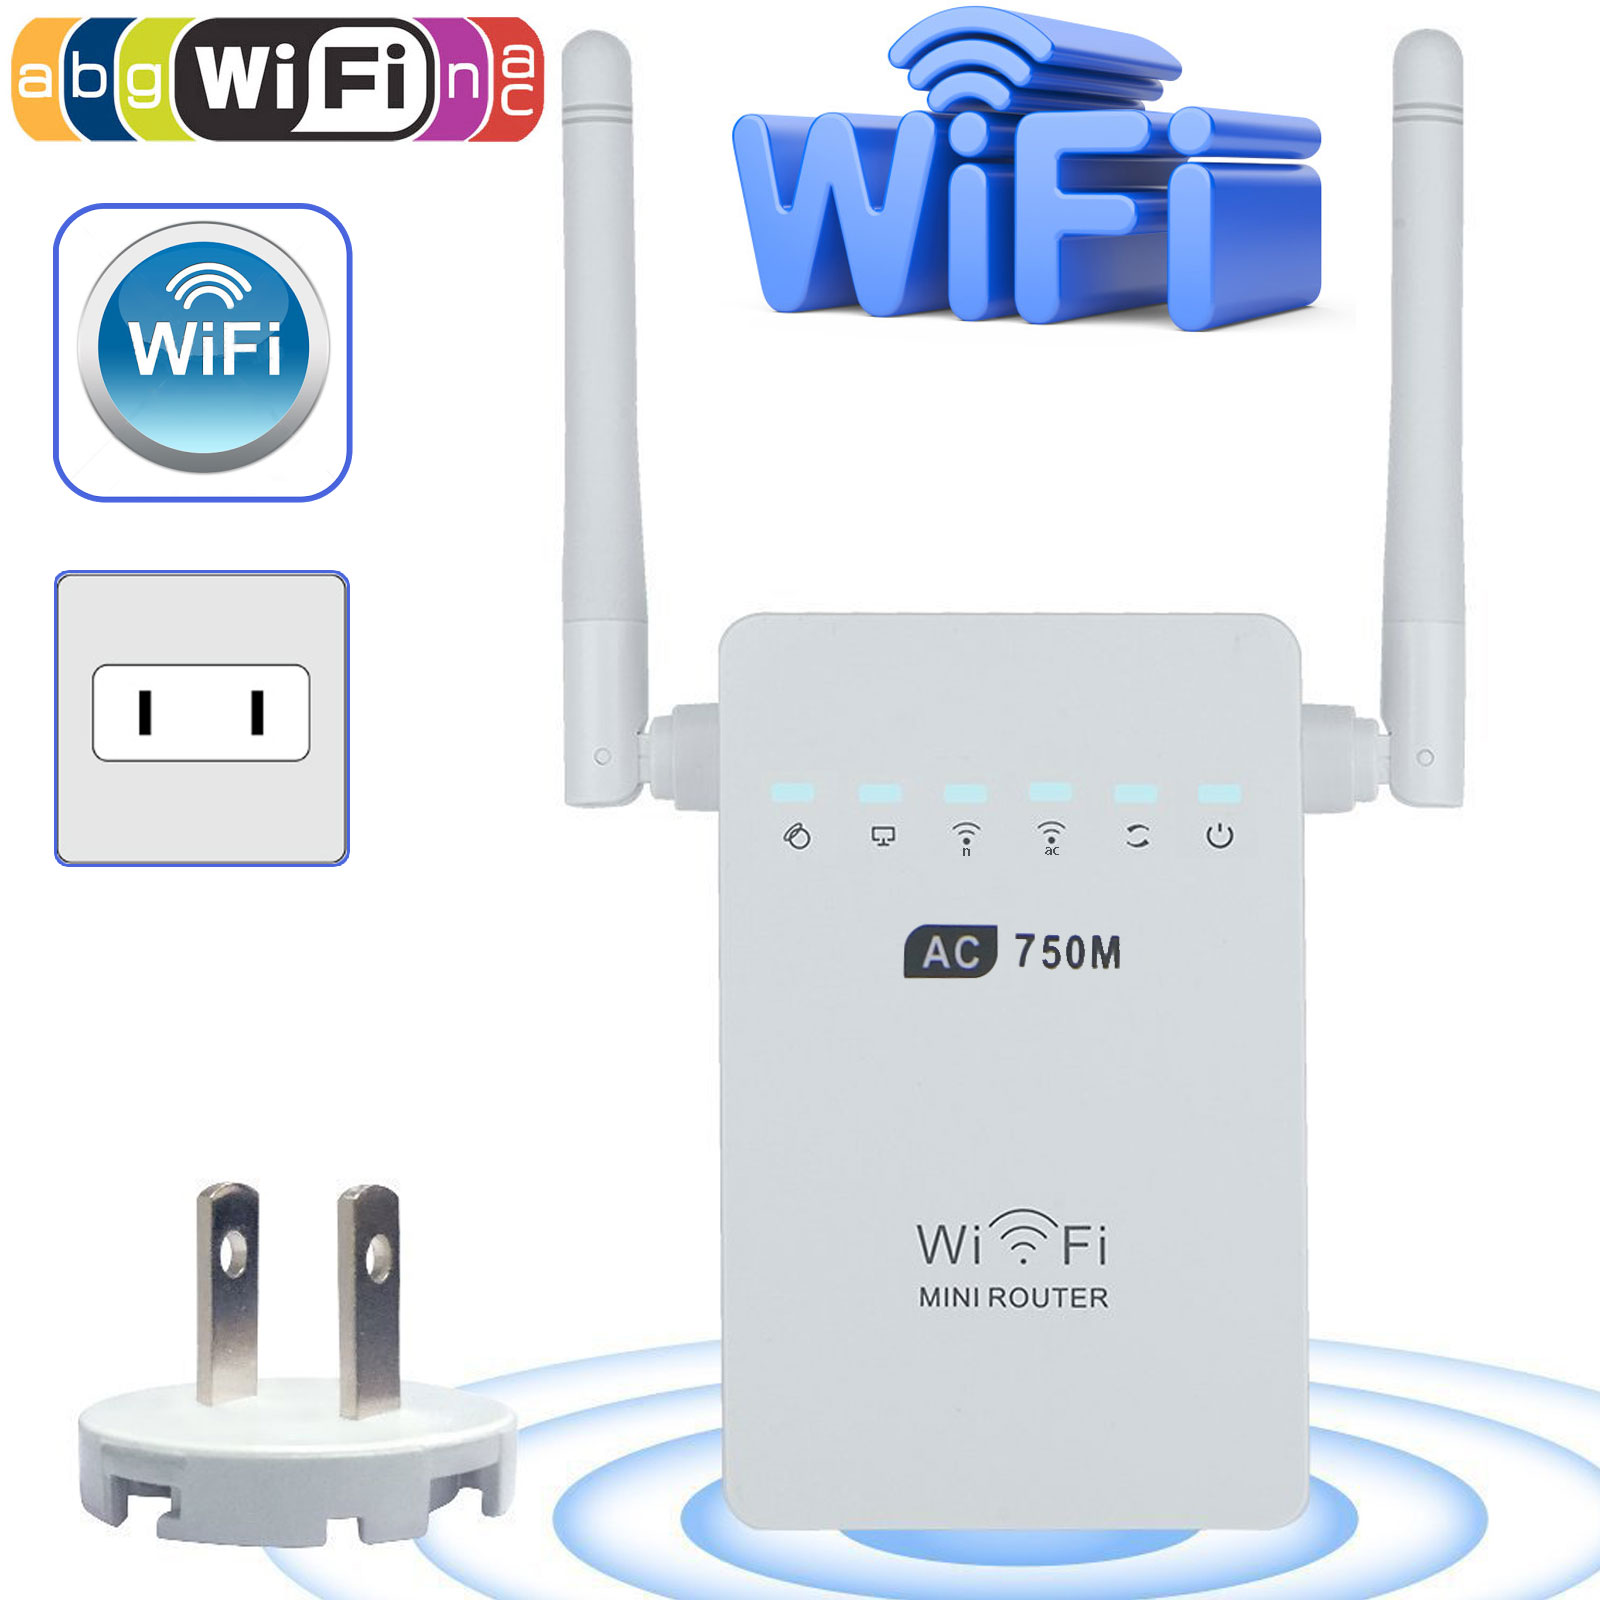 EEEKit 750 Mbps Dual Band WiFi Router Network Range Extender Wireless Repeater IEEE 802.11a b g n & 802.11ac Booster... by EEEKit